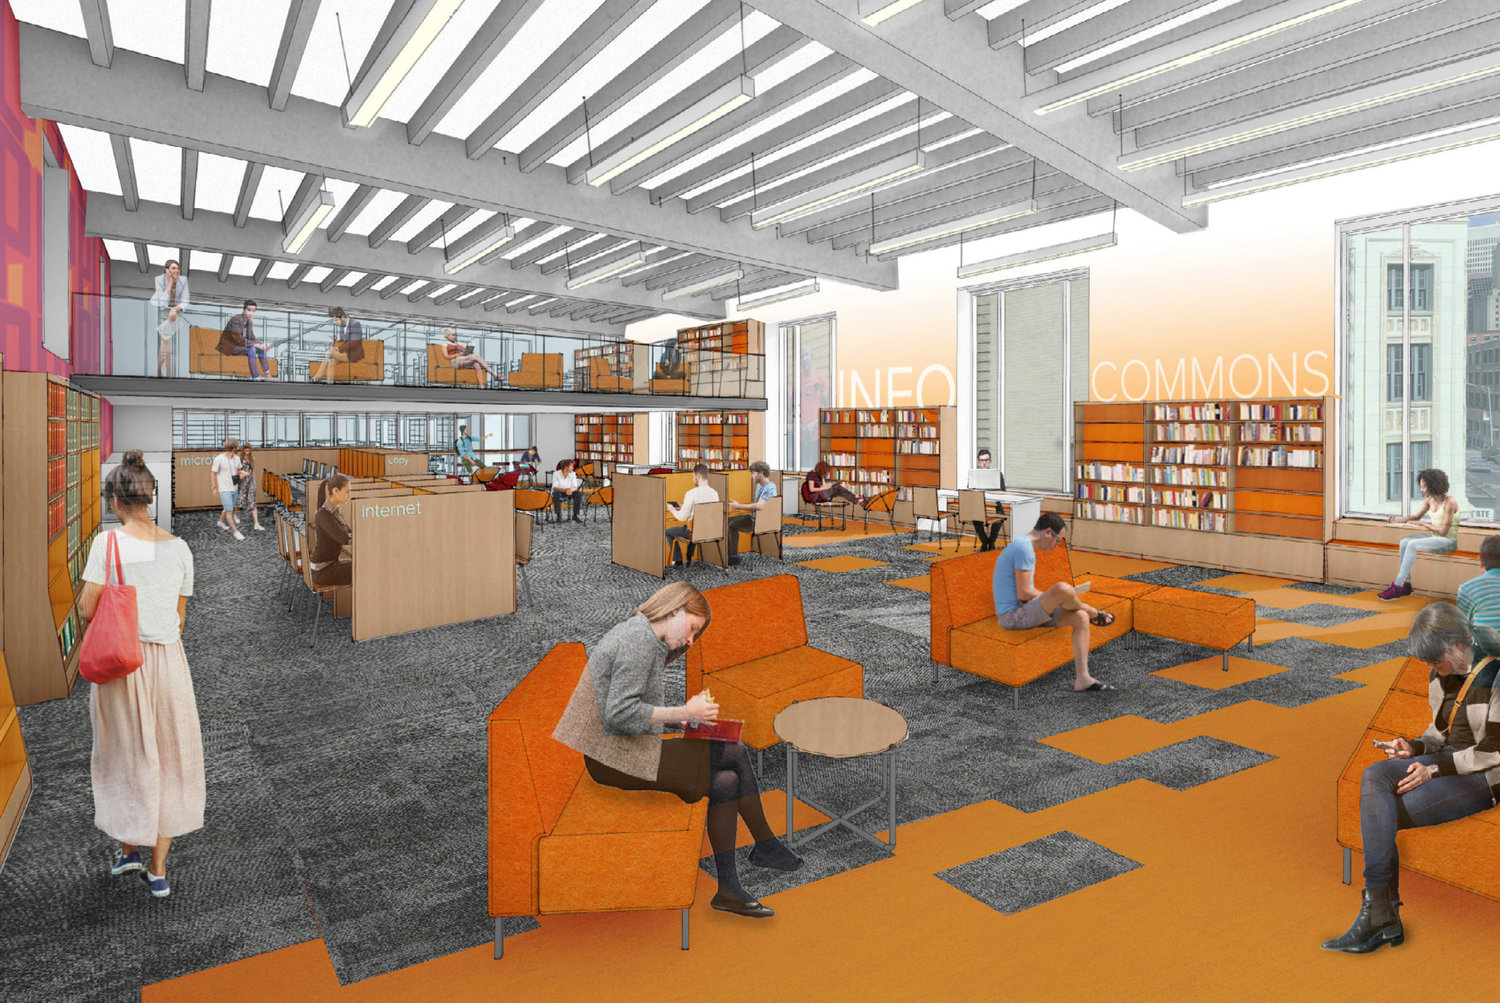 Architectural rendering of the finished Info Commons room